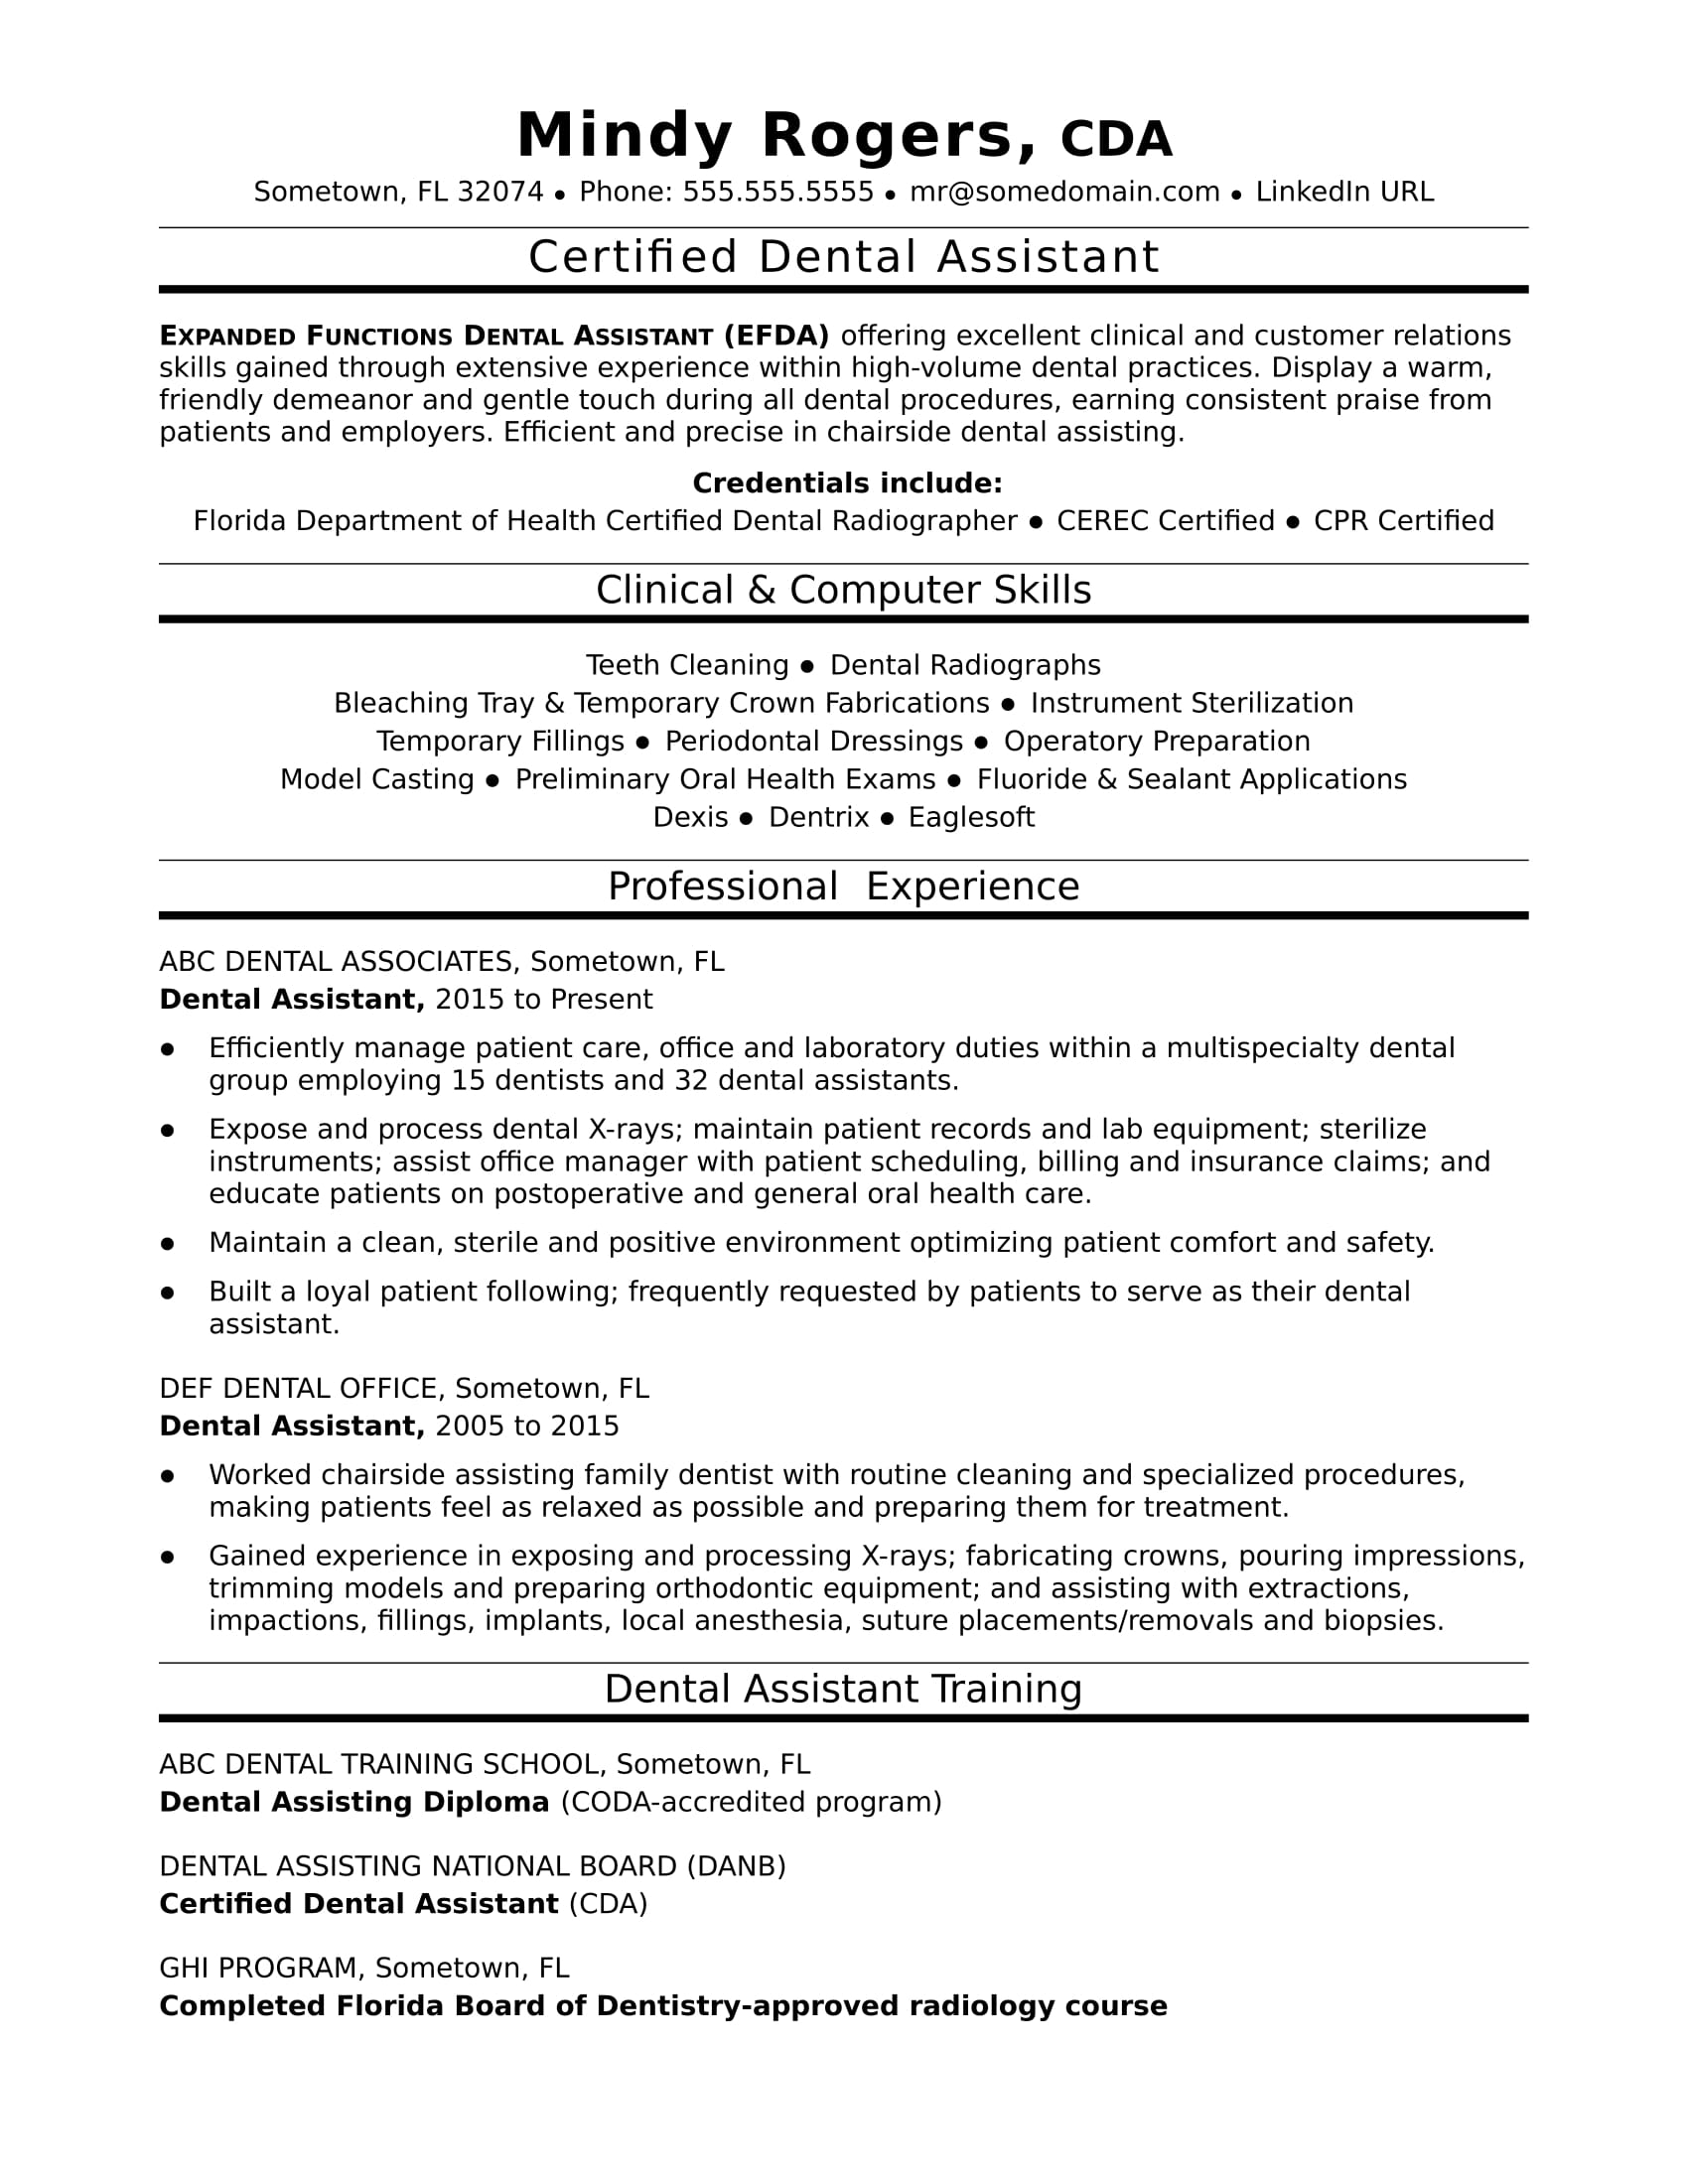 Dental Assistant Resume Sample | Monster com